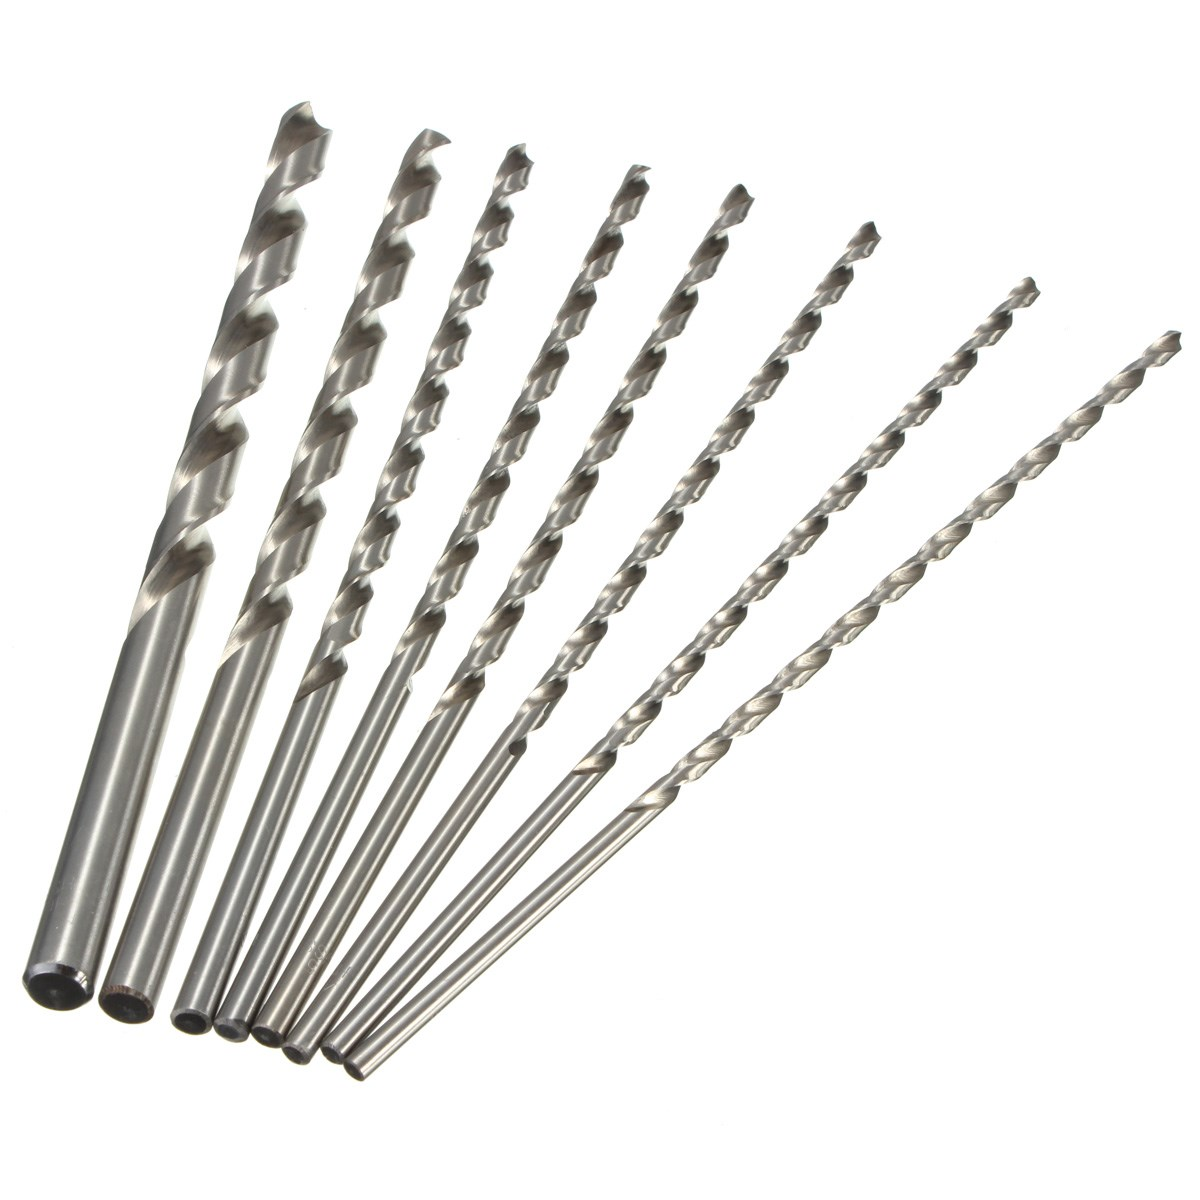 1PC Extra Long 200mm HSS Twist Drill 4mm 5mm 6mm 8mm 10mm Straigth Shank Auger Wood Metal Drilling Tool Top Quality 10pcs 0 5mm micro hss twist drilling auger bit for electrical drill new page 1